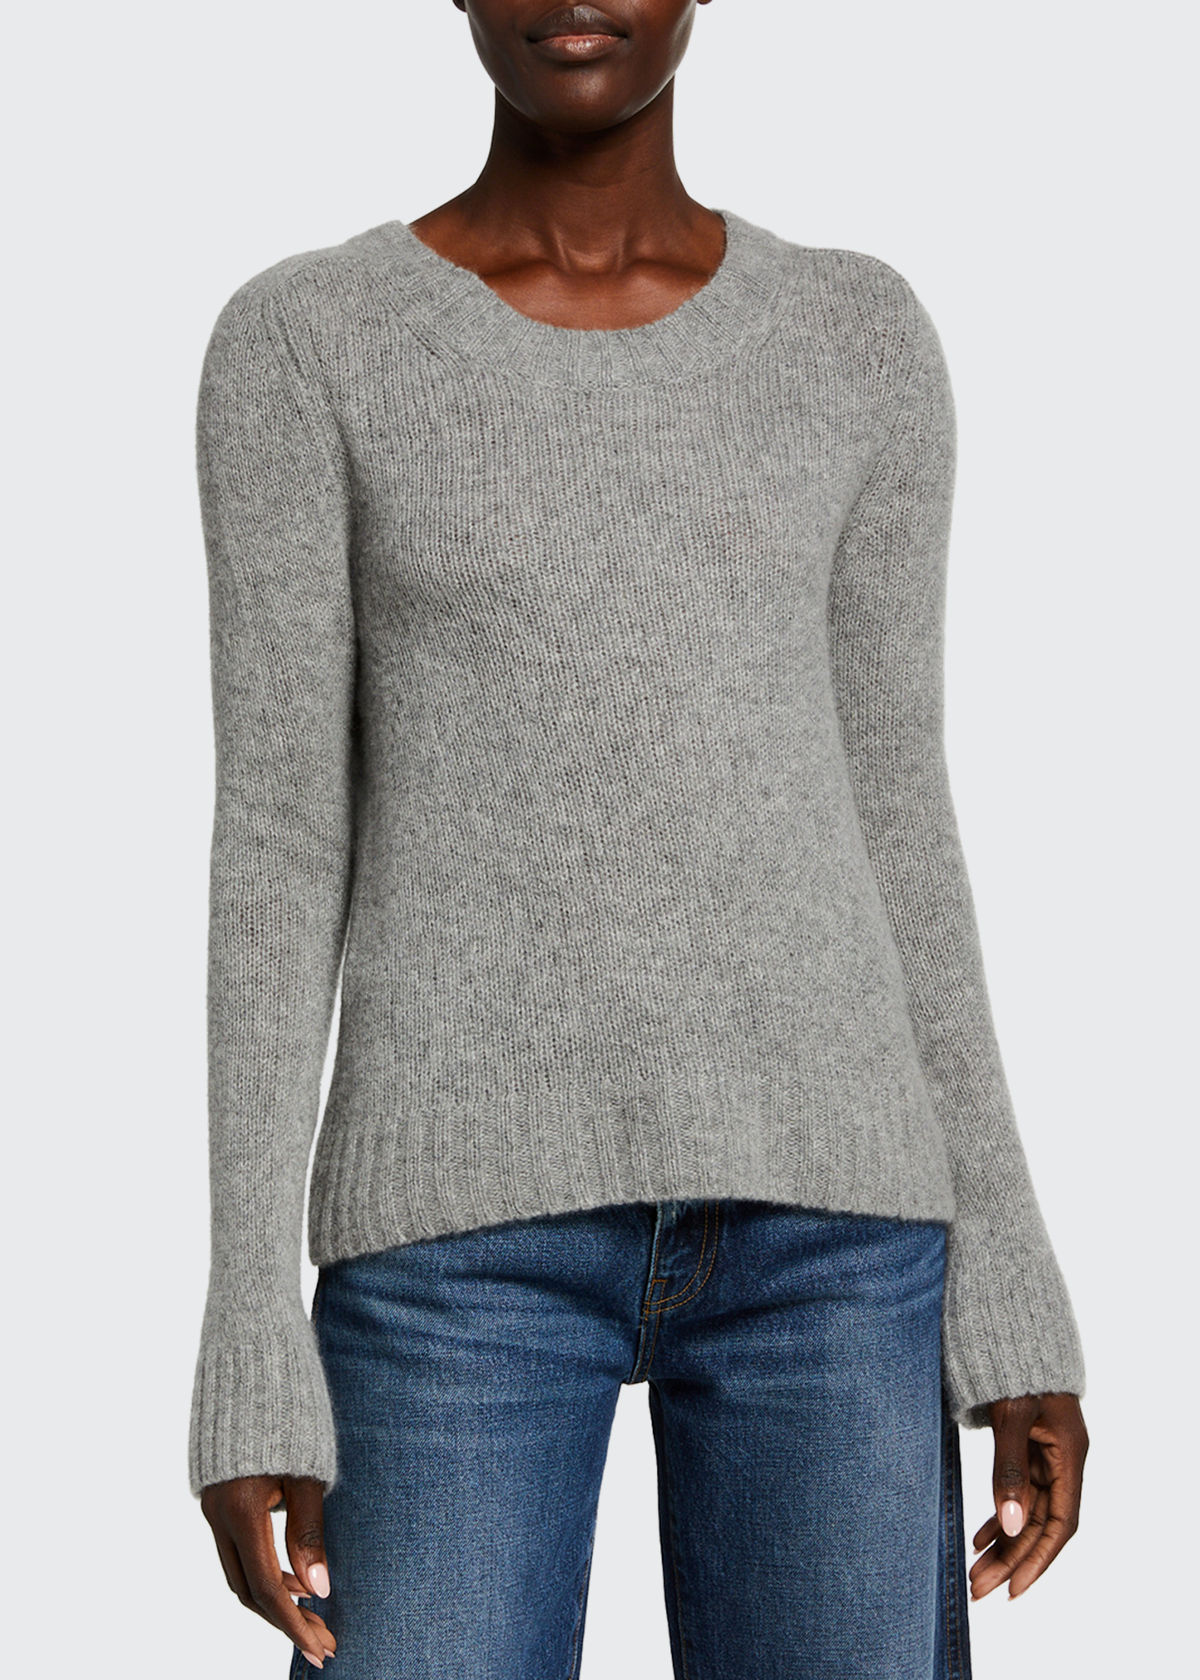 Khaite MARY JANE CASHMERE SWEATER